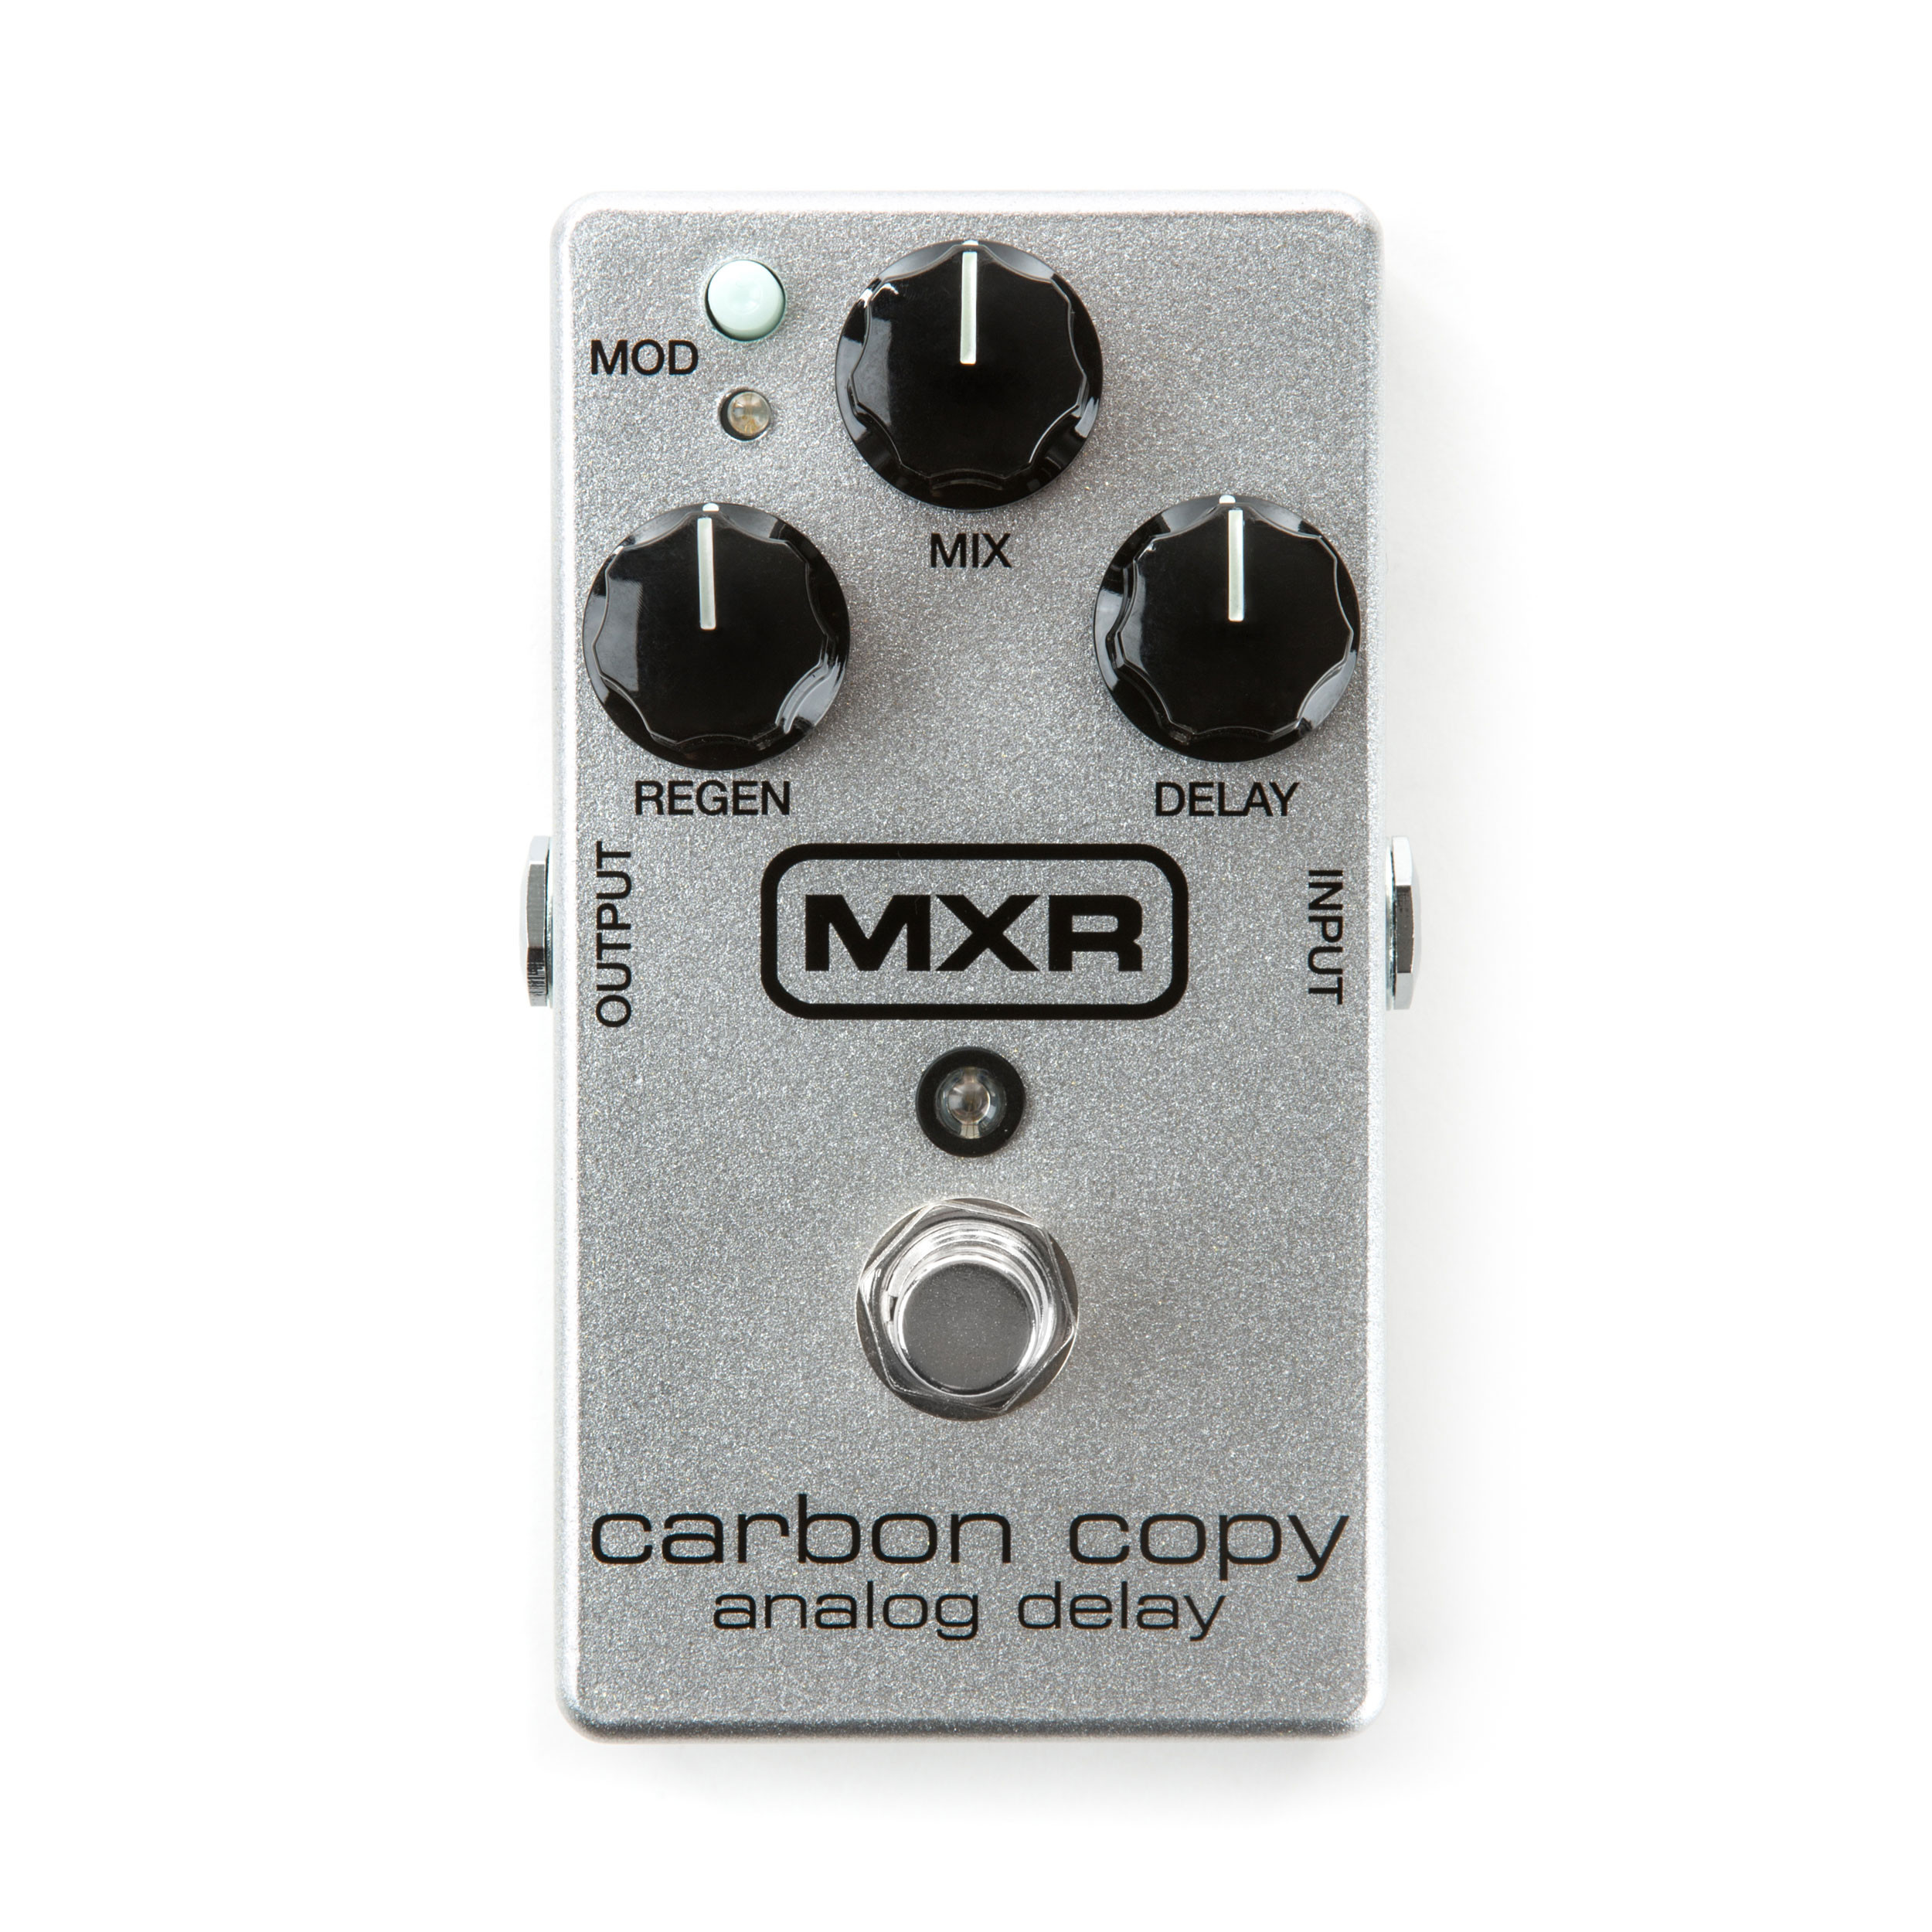 MXR sup sup CARBON COPY sup &reg